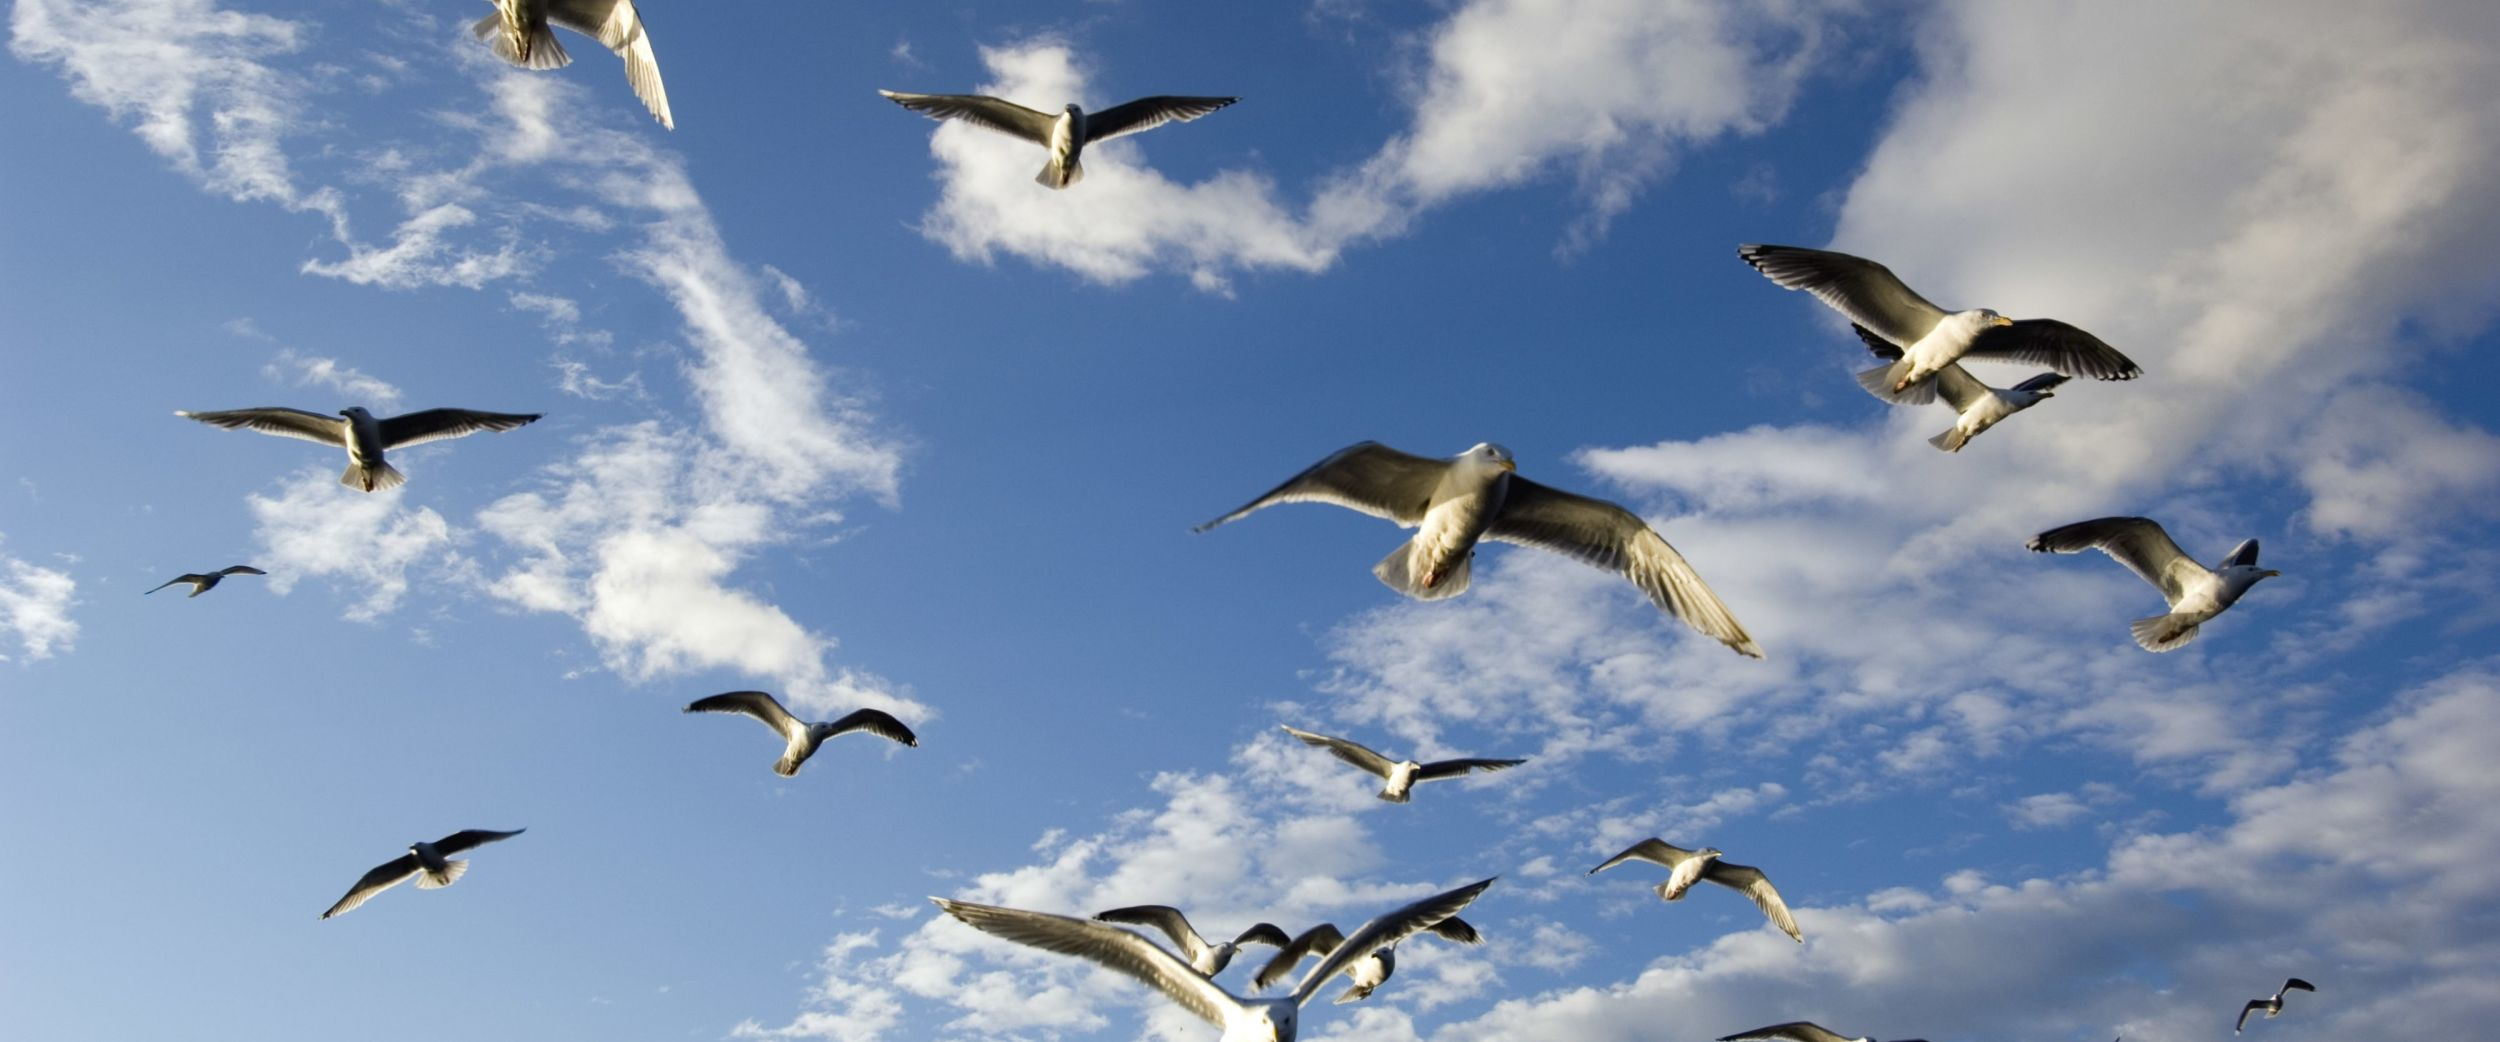 Seagulls in Finnmark. Photo Johan Wildhagen/visitnorway.com